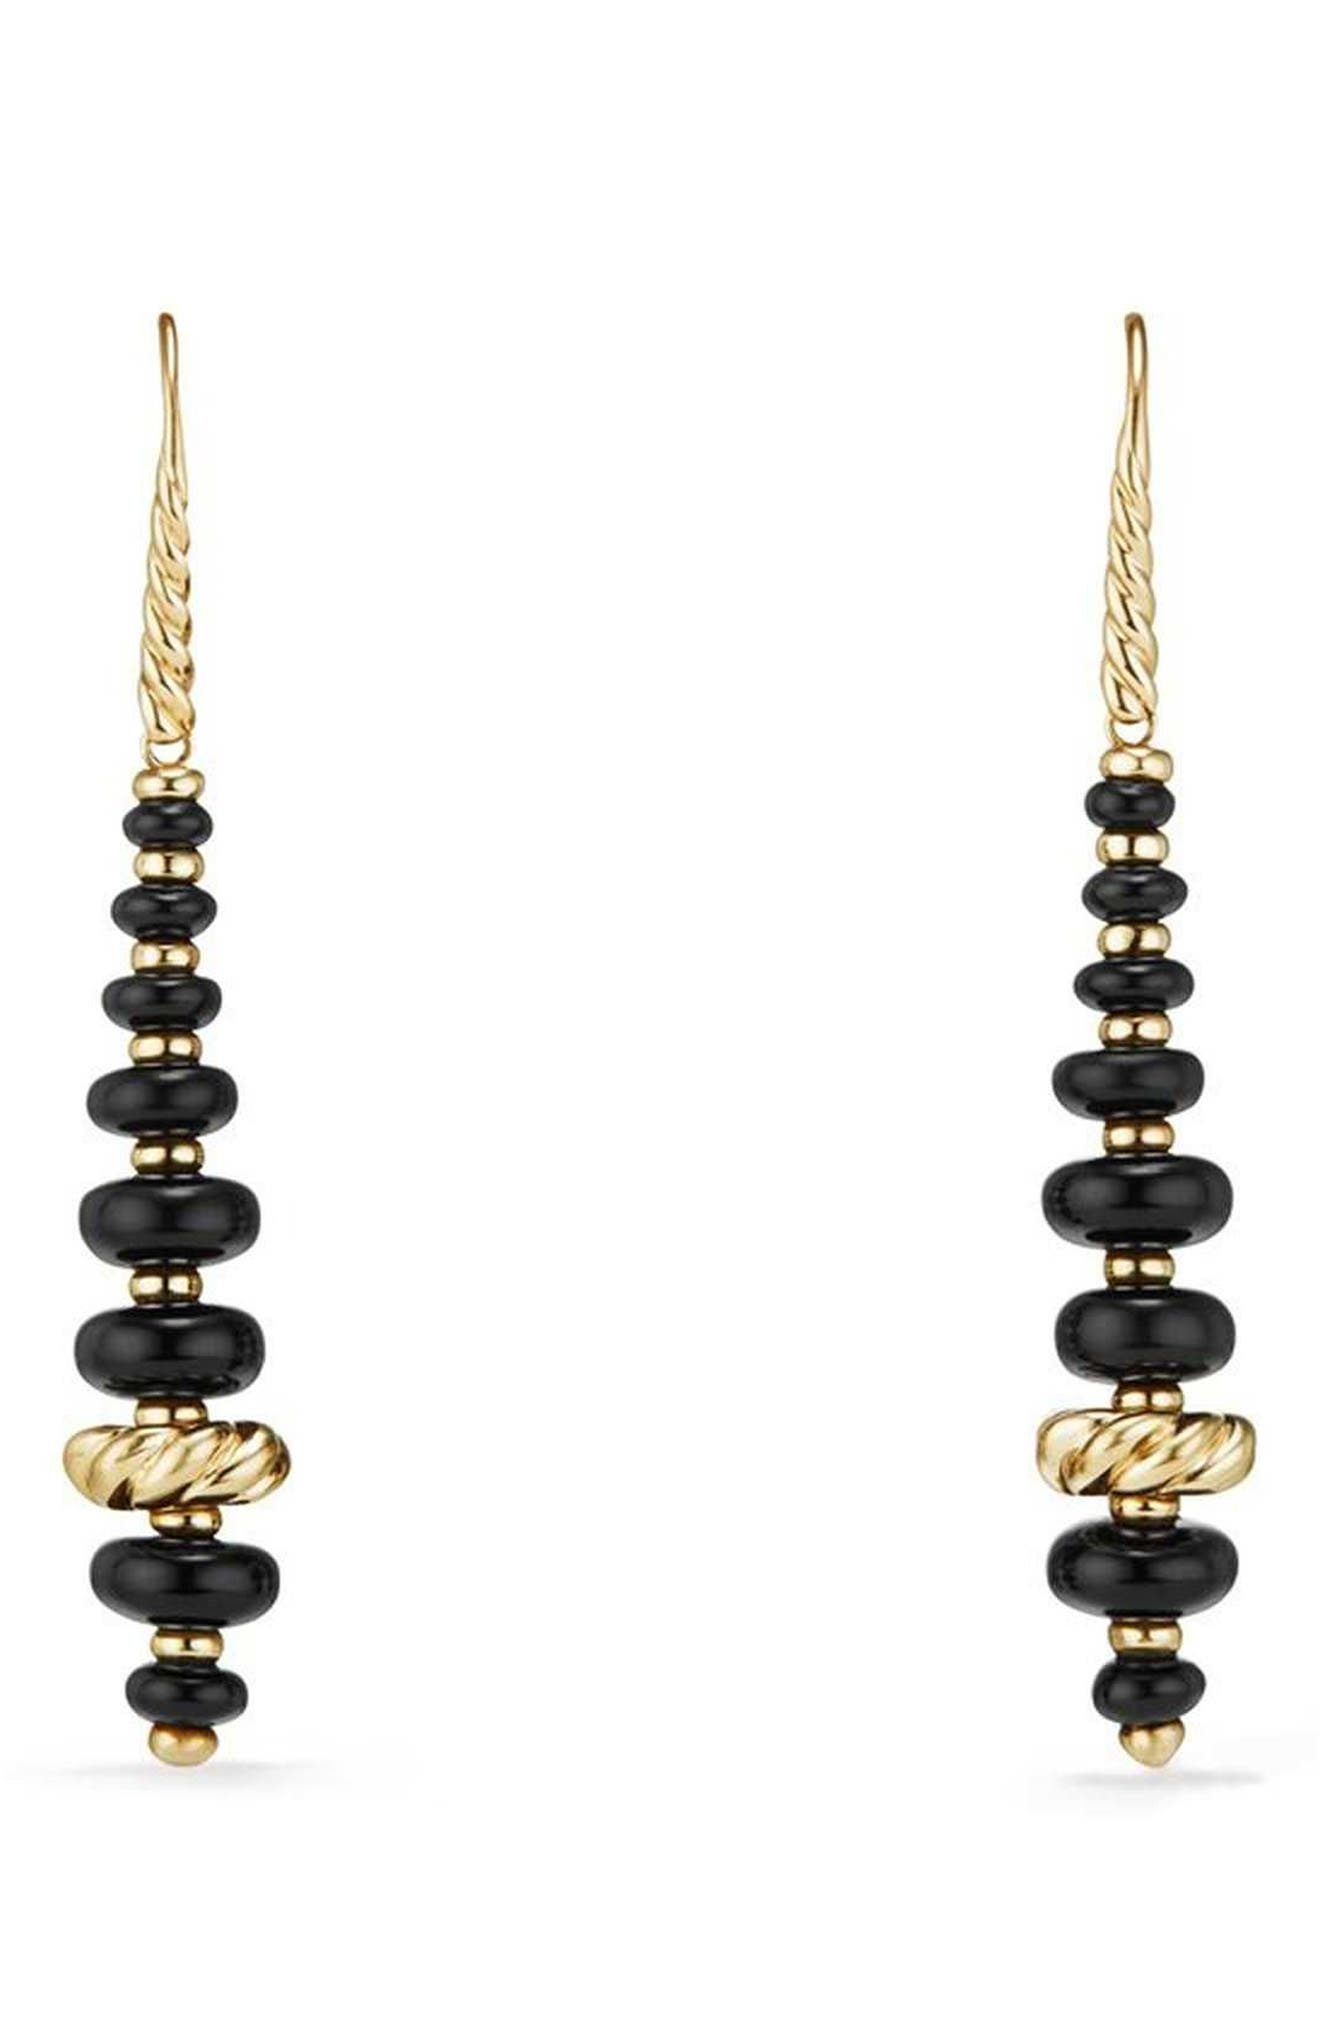 Rio Rondelle Drop Earrings in 18K Gold,                         Main,                         color, GOLD/ BLACK ONYX